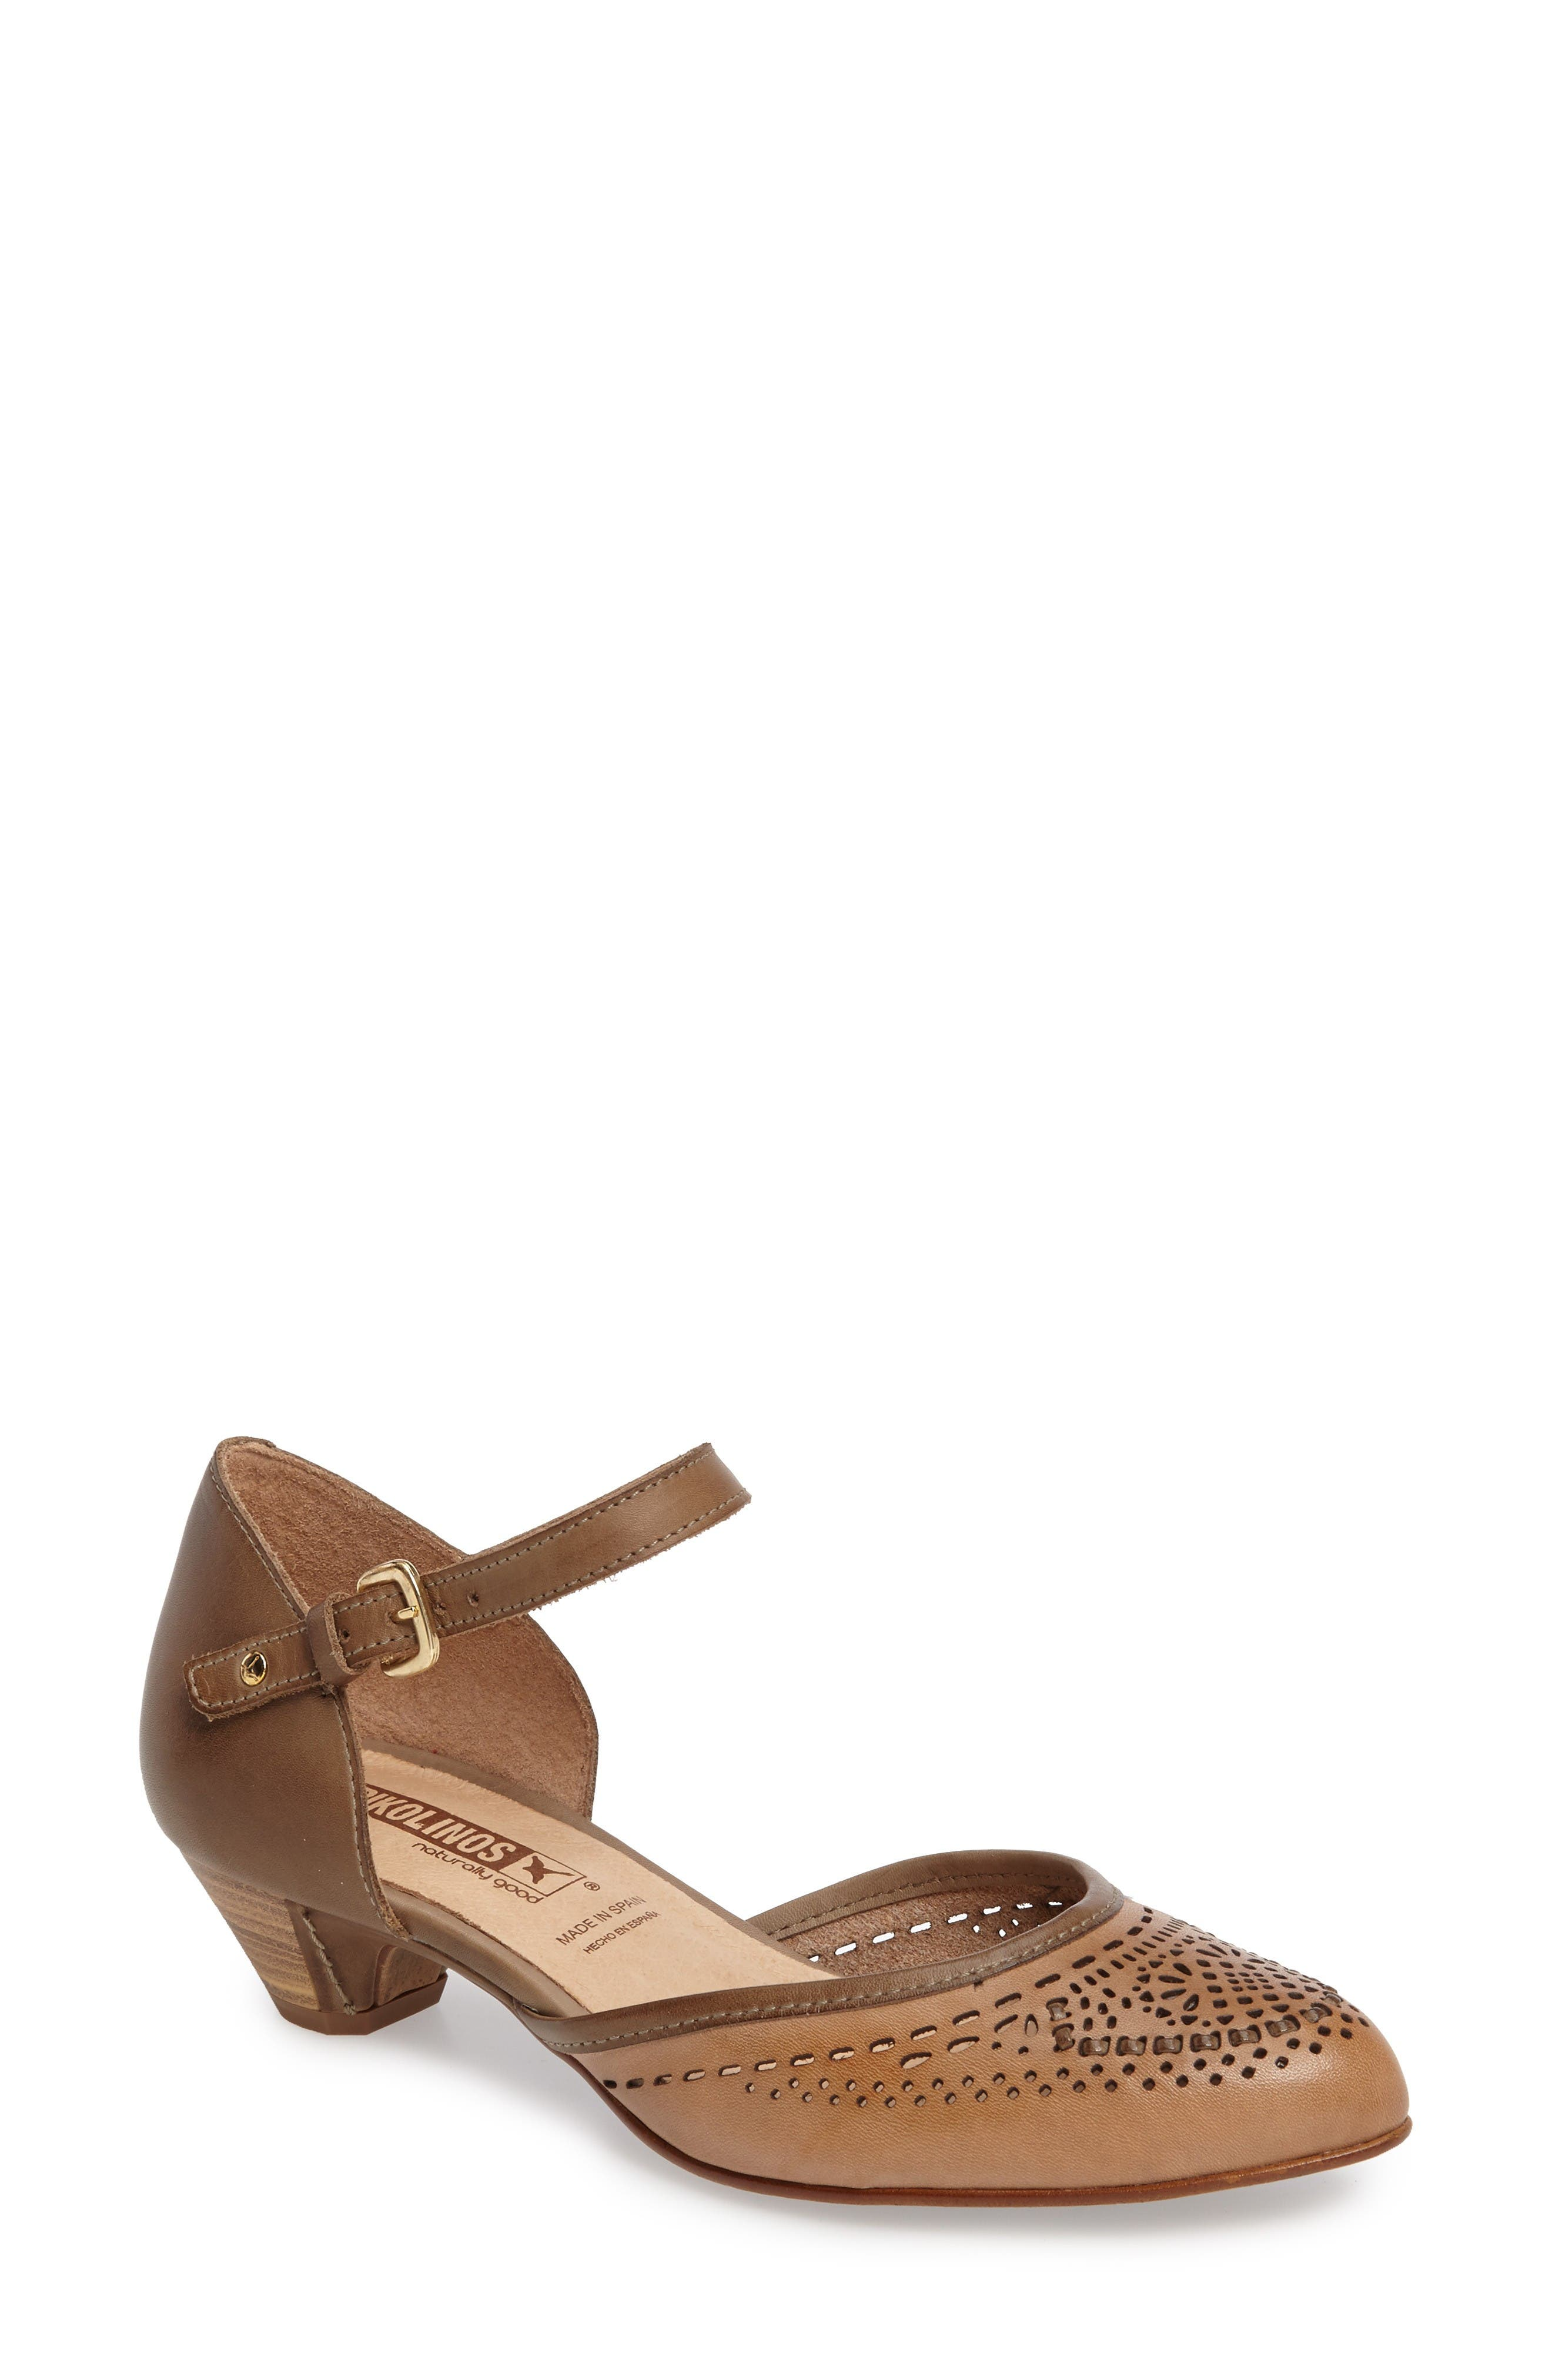 Alternate Image 1 Selected - PIKOLINOS 'Elba' Perforated Leather Ankle Strap Sandal (Women)